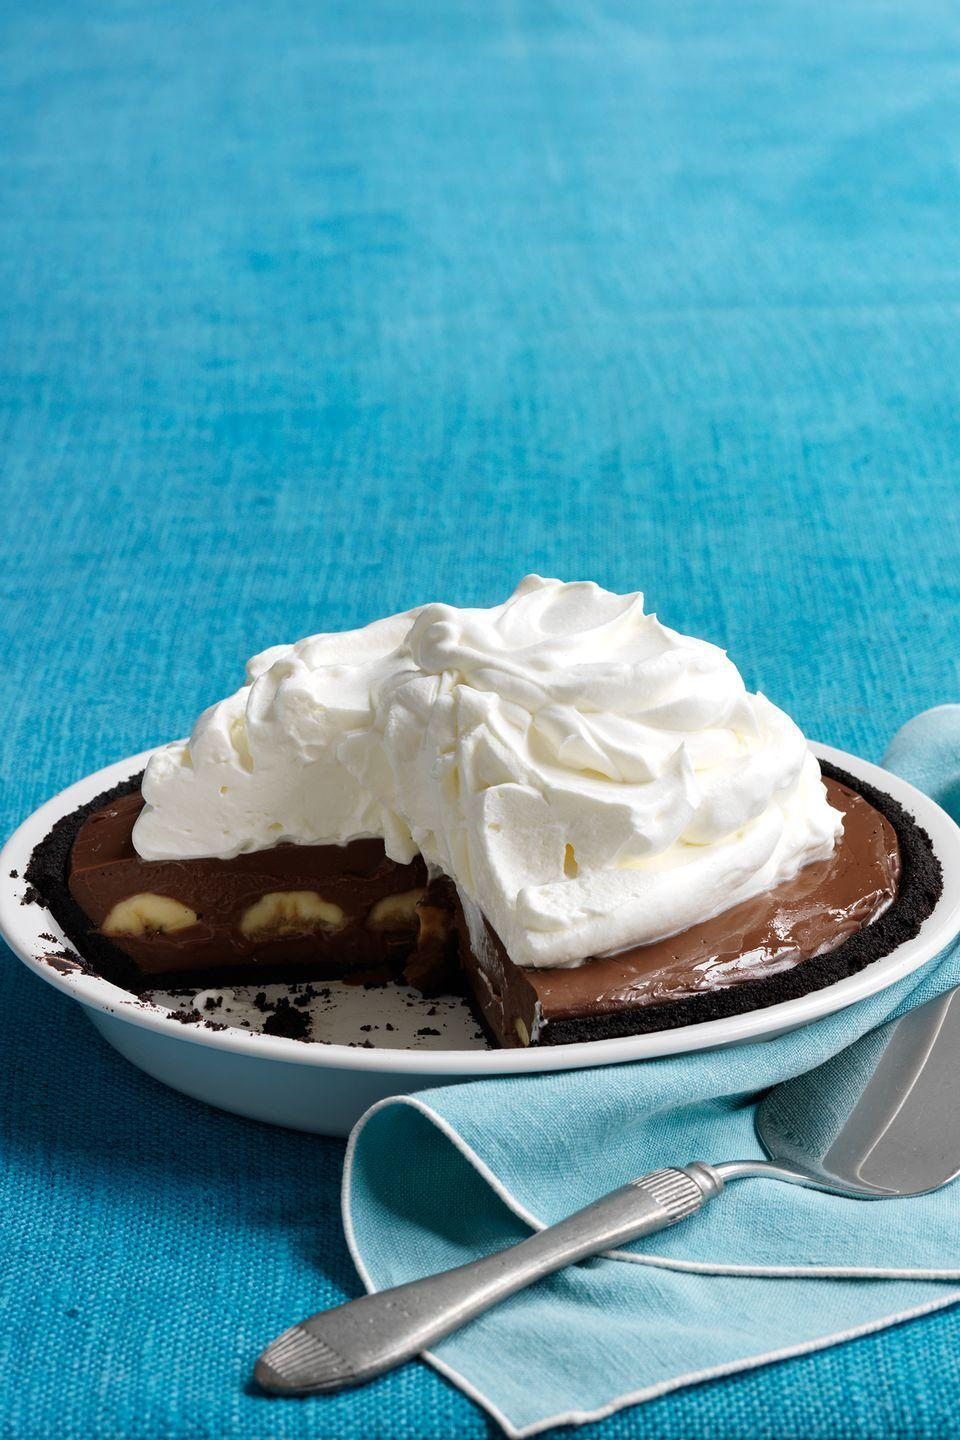 "<p>Your Thanksgiving guests will be surprised and delighted when they bite into this rich pie and discover its chocolate wafer <a href=""https://www.countryliving.com/food-drinks/g3845/thanksgiving-cookies/"" rel=""nofollow noopener"" target=""_blank"" data-ylk=""slk:cookie"" class=""link rapid-noclick-resp"">cookie</a> crust.</p><p><strong><a href=""https://www.countryliving.com/food-drinks/recipes/a33398/double-chocolate-banana-cream-pie-recipe/"" rel=""nofollow noopener"" target=""_blank"" data-ylk=""slk:Get the recipe"" class=""link rapid-noclick-resp"">Get the recipe</a>.</strong></p><p><a class=""link rapid-noclick-resp"" href=""https://www.amazon.com/Camp-Chef-True-Seasoned-CIPIE10/dp/B000OXAQ6G?tag=syn-yahoo-20&ascsubtag=%5Bartid%7C10050.g.957%5Bsrc%7Cyahoo-us"" rel=""nofollow noopener"" target=""_blank"" data-ylk=""slk:SHOP PIE PANS"">SHOP PIE PANS</a> </p>"